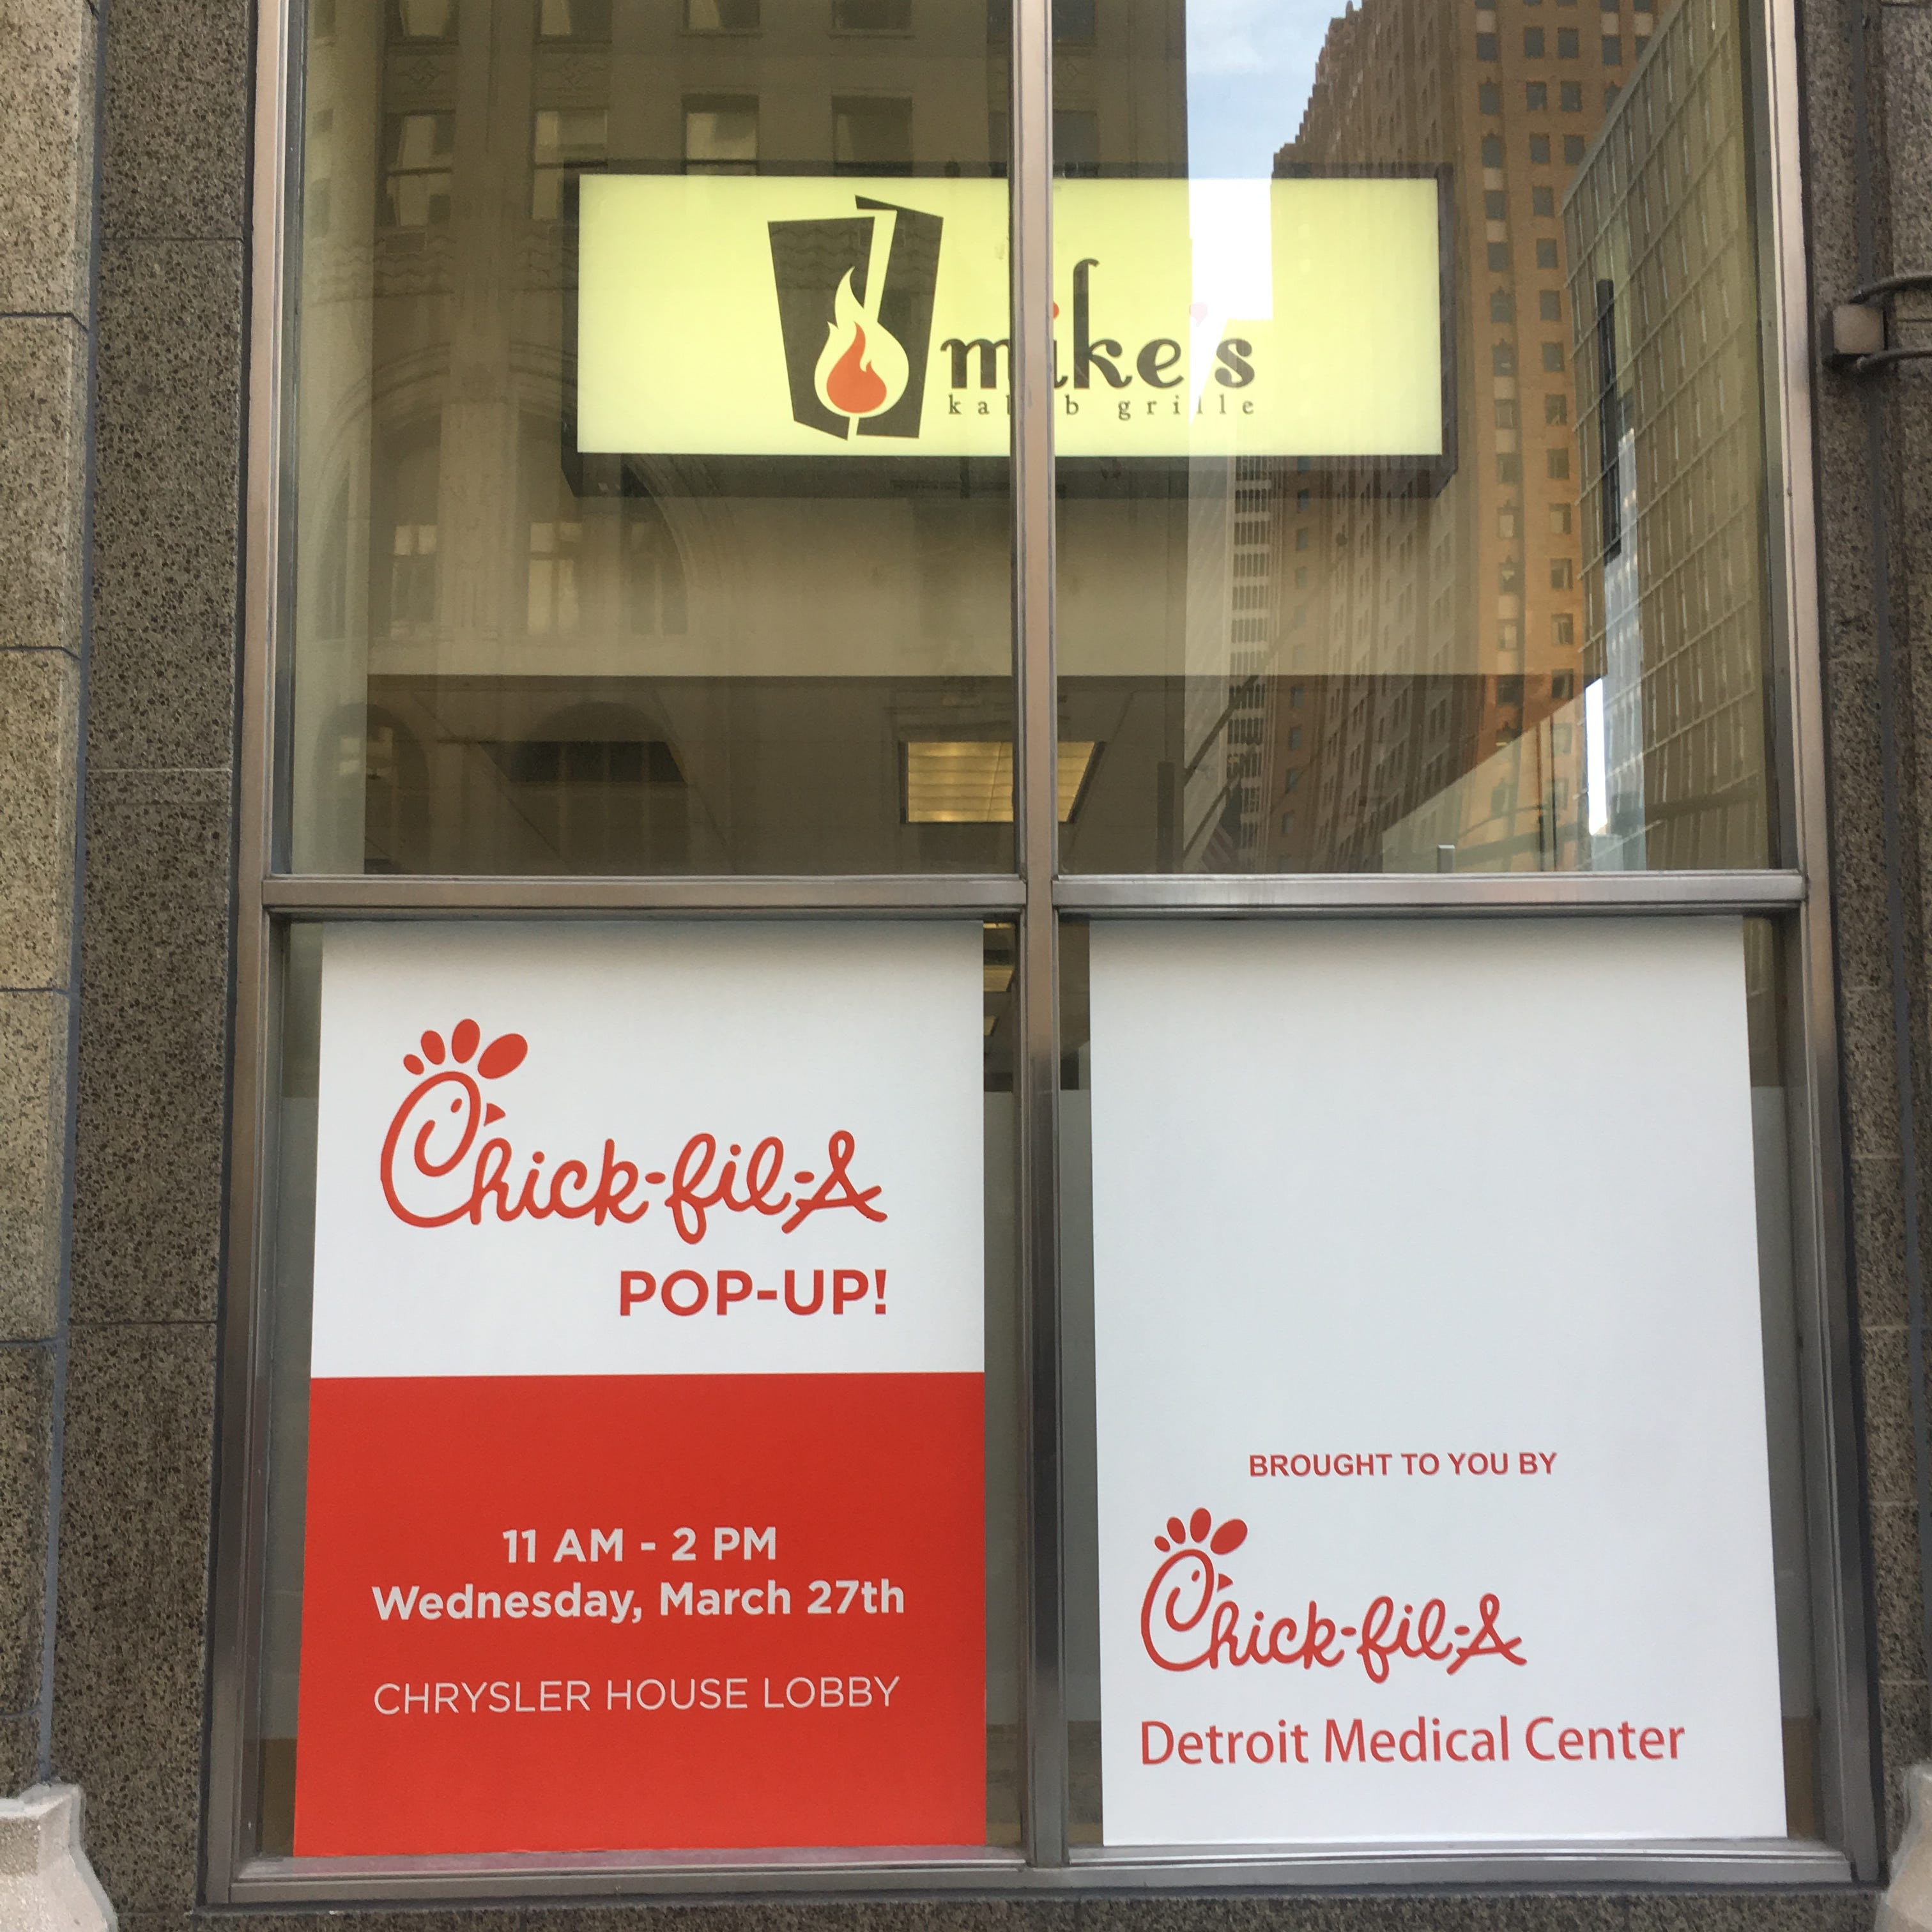 Chick-fil-A opens pop-up in downtown Detroit for 1 day only today